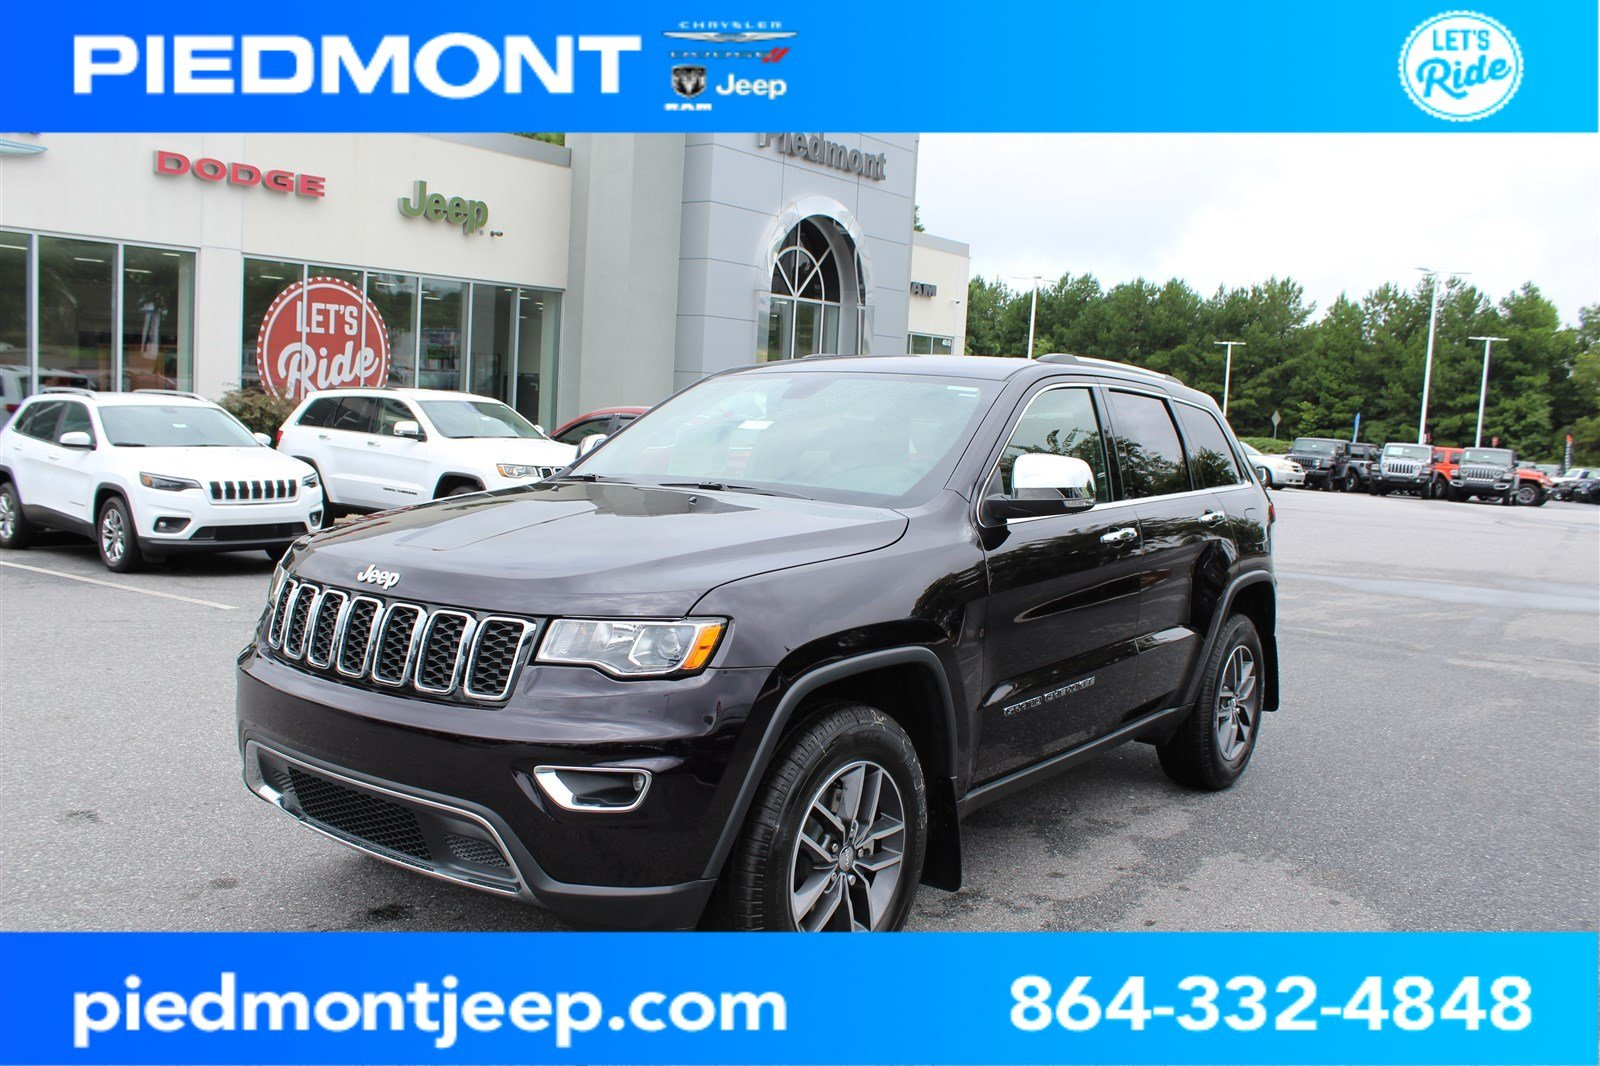 New 2018 Jeep Grand Cherokee Limited Sport Utility In Anderson Towing Wire Harness Hook Up